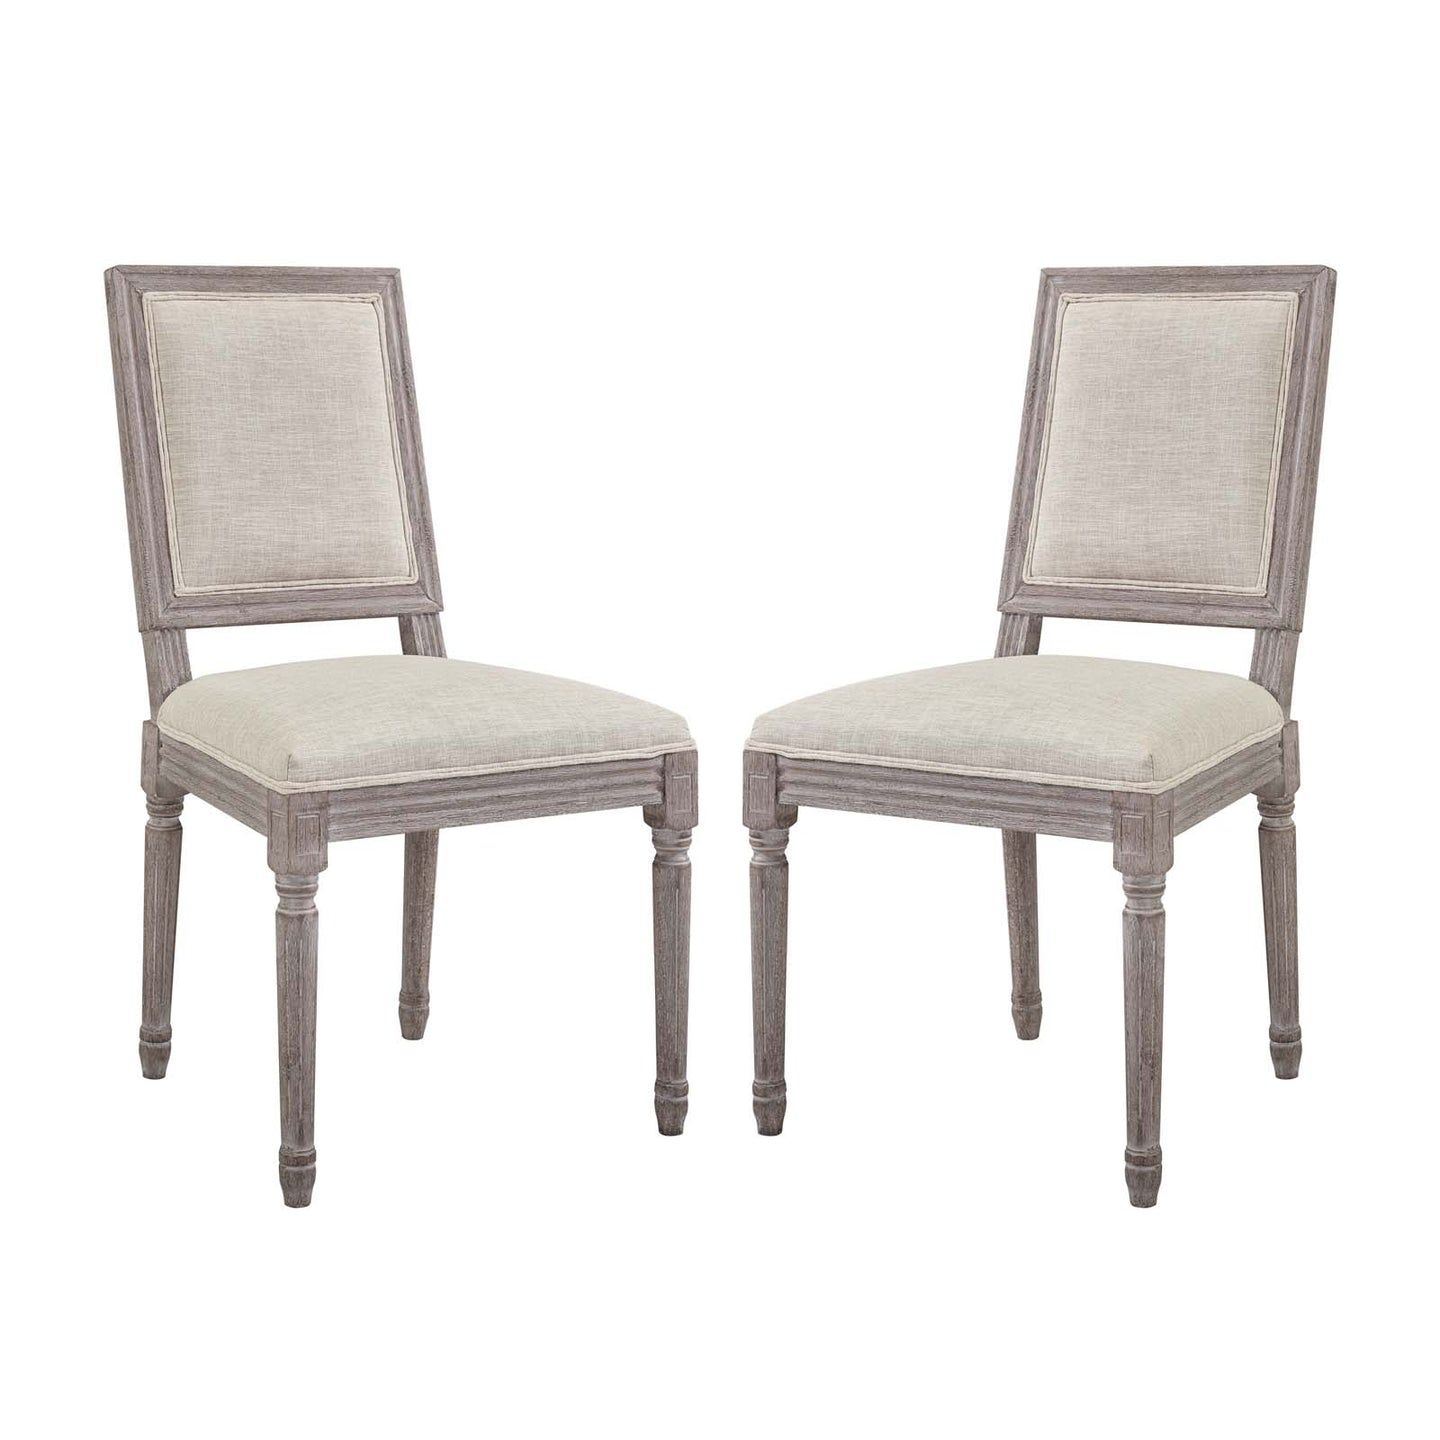 Modway Furniture Modern Court Dining Side Chair Upholstered Fabric Set of 2 - EEI-3500